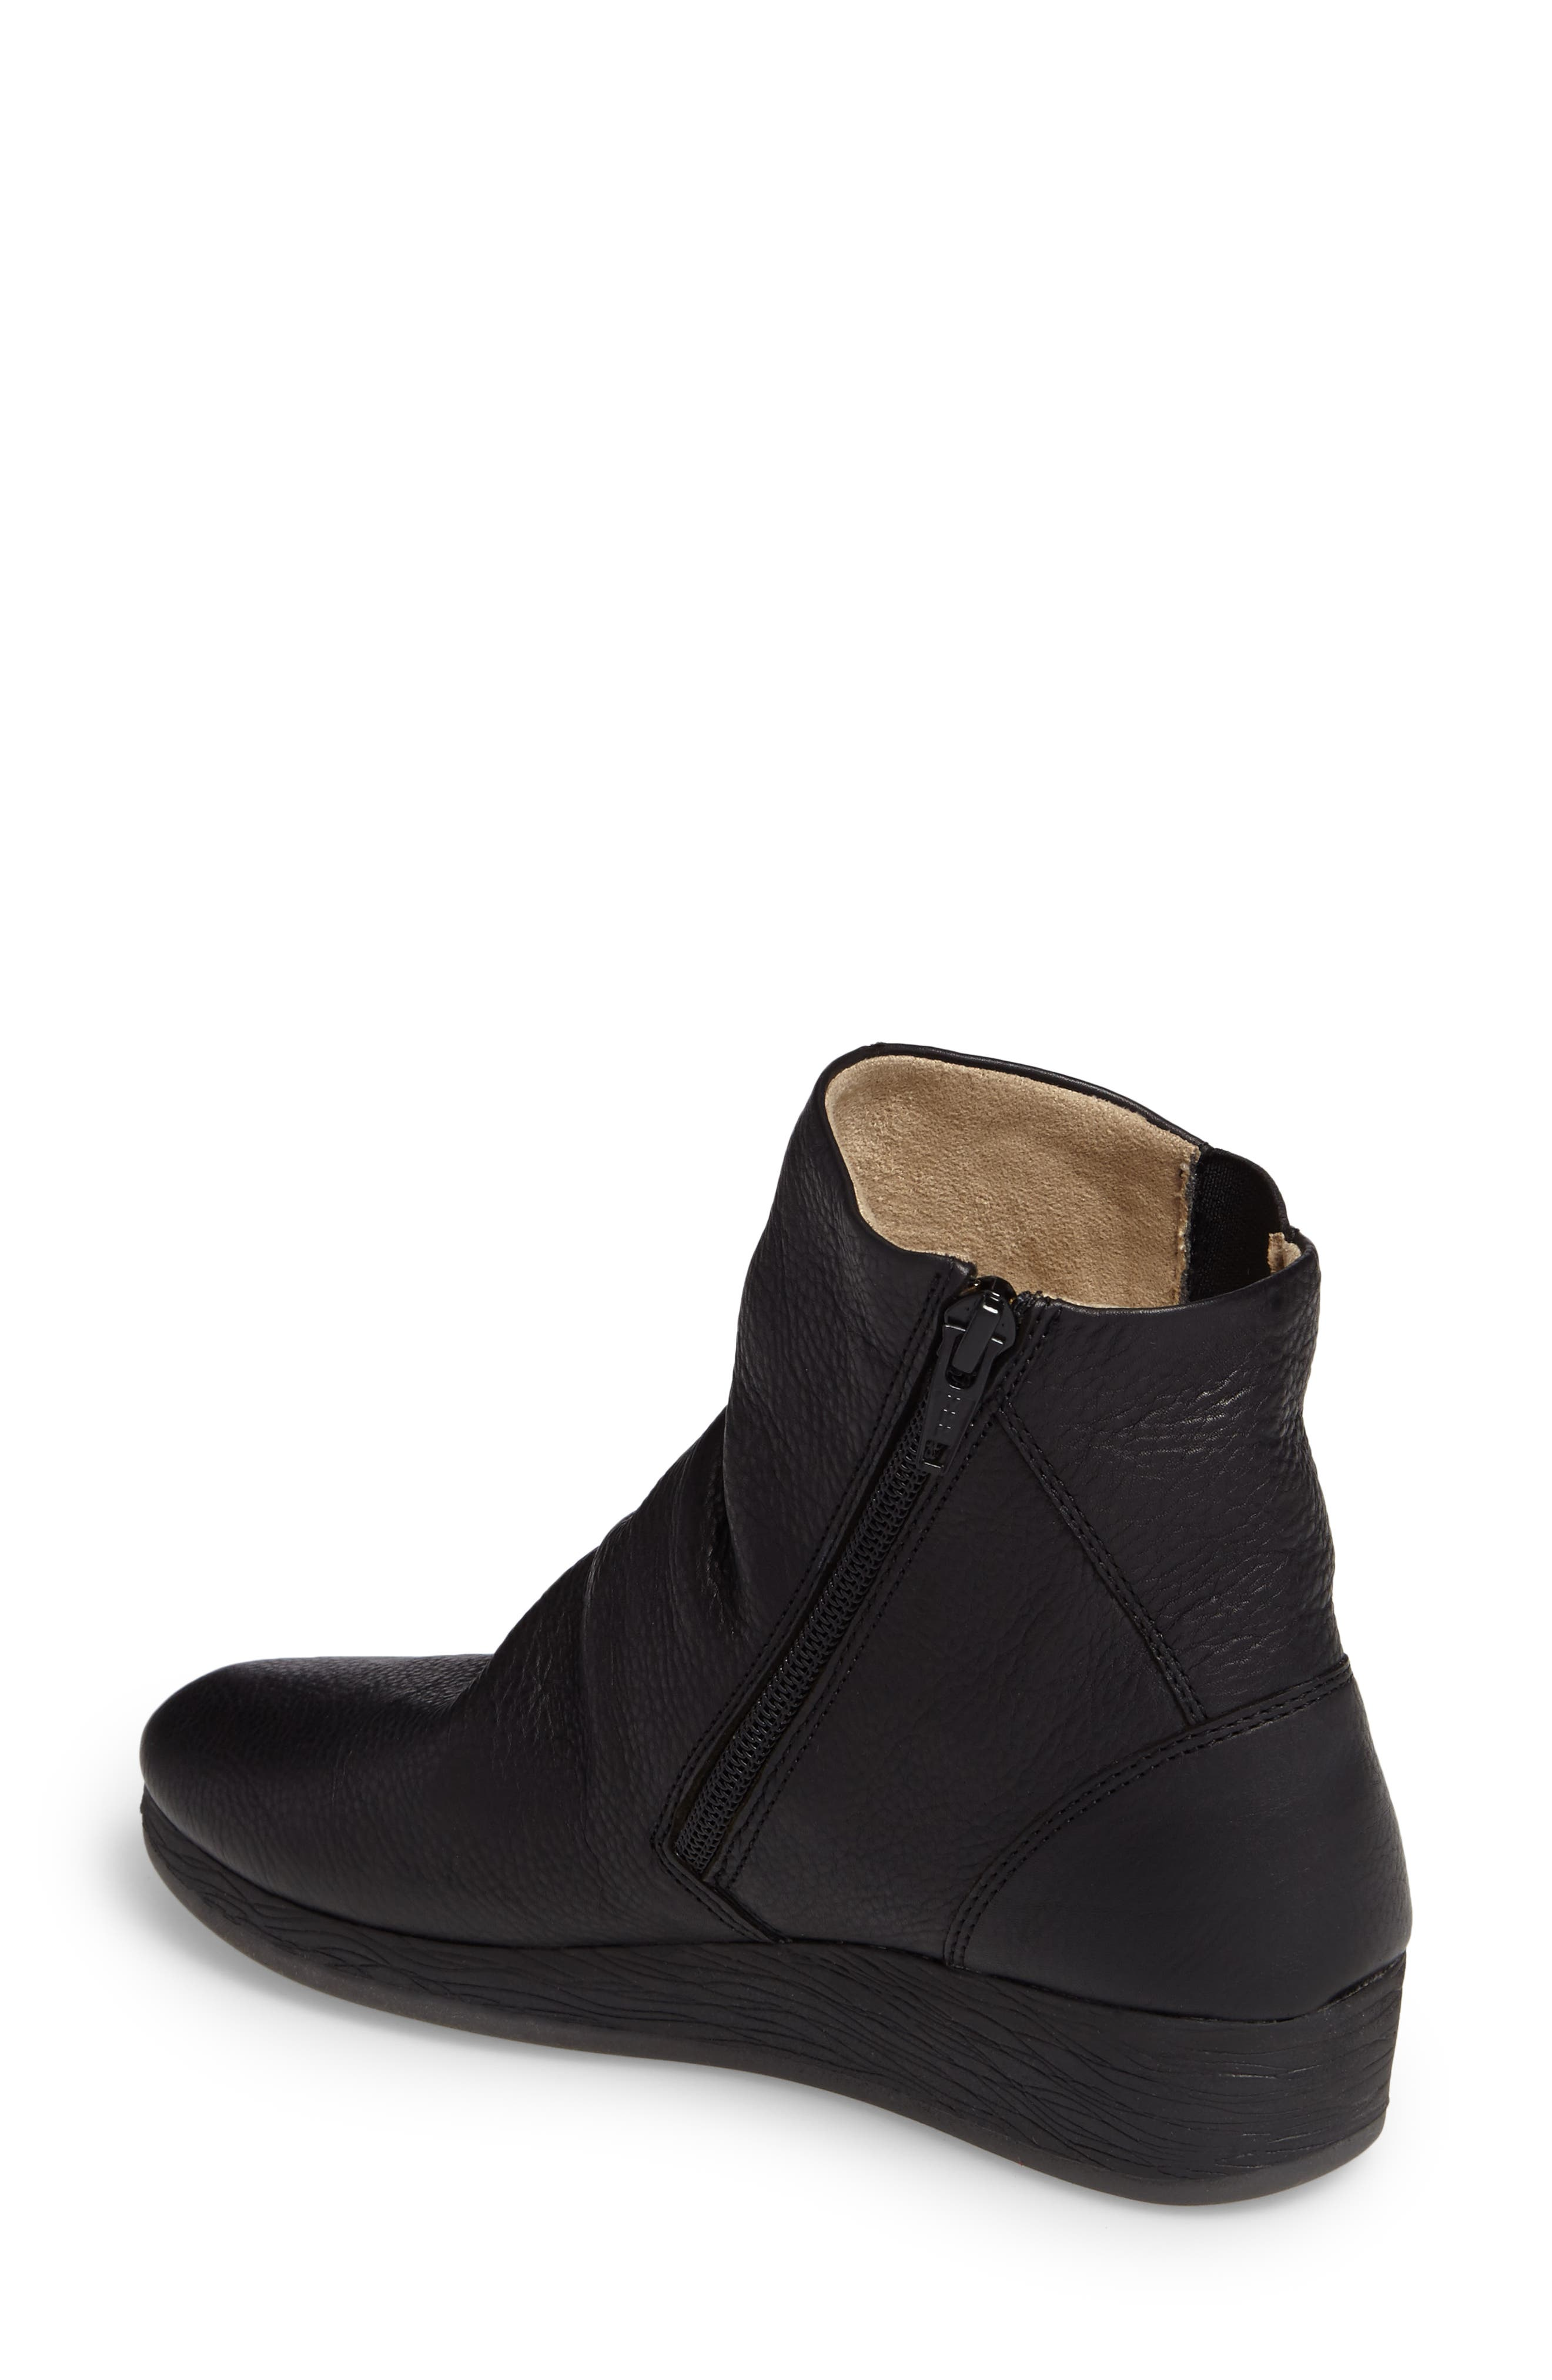 Alternate Image 2  - Softinos by Fly London Ayo Low Wedge Bootie (Women)